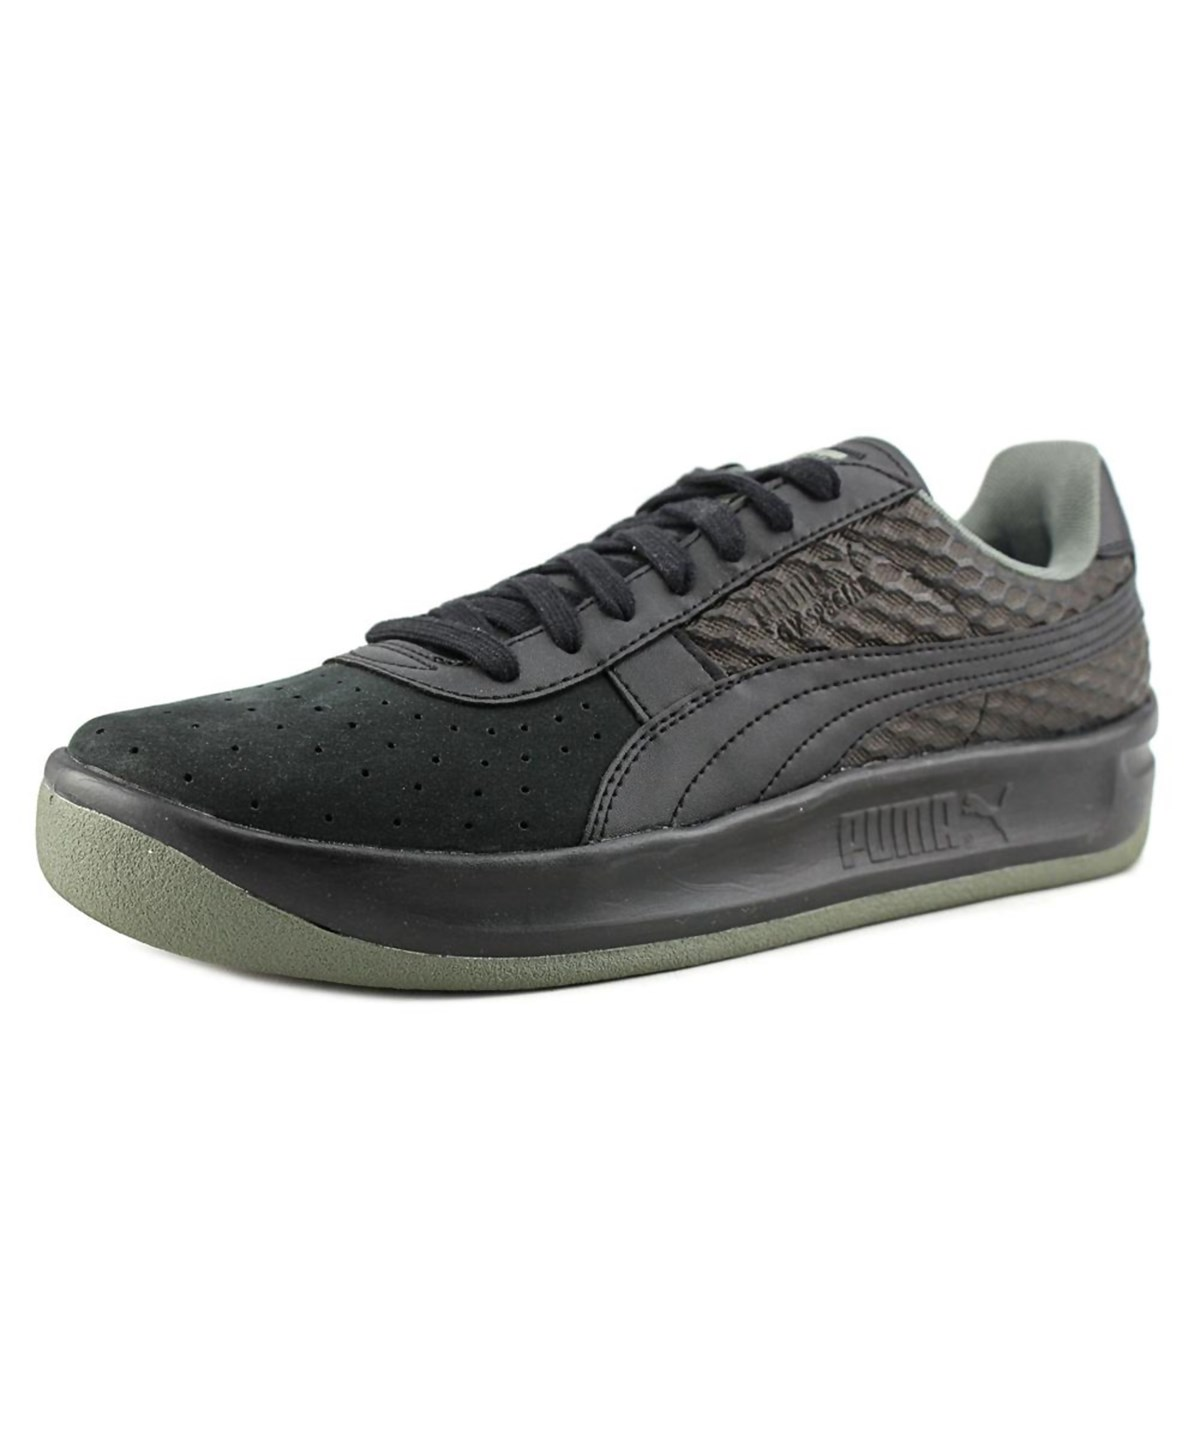 newest 807a1 82193 Puma Gv Special Textured Men Round Toe Synthetic Black Running Shoe